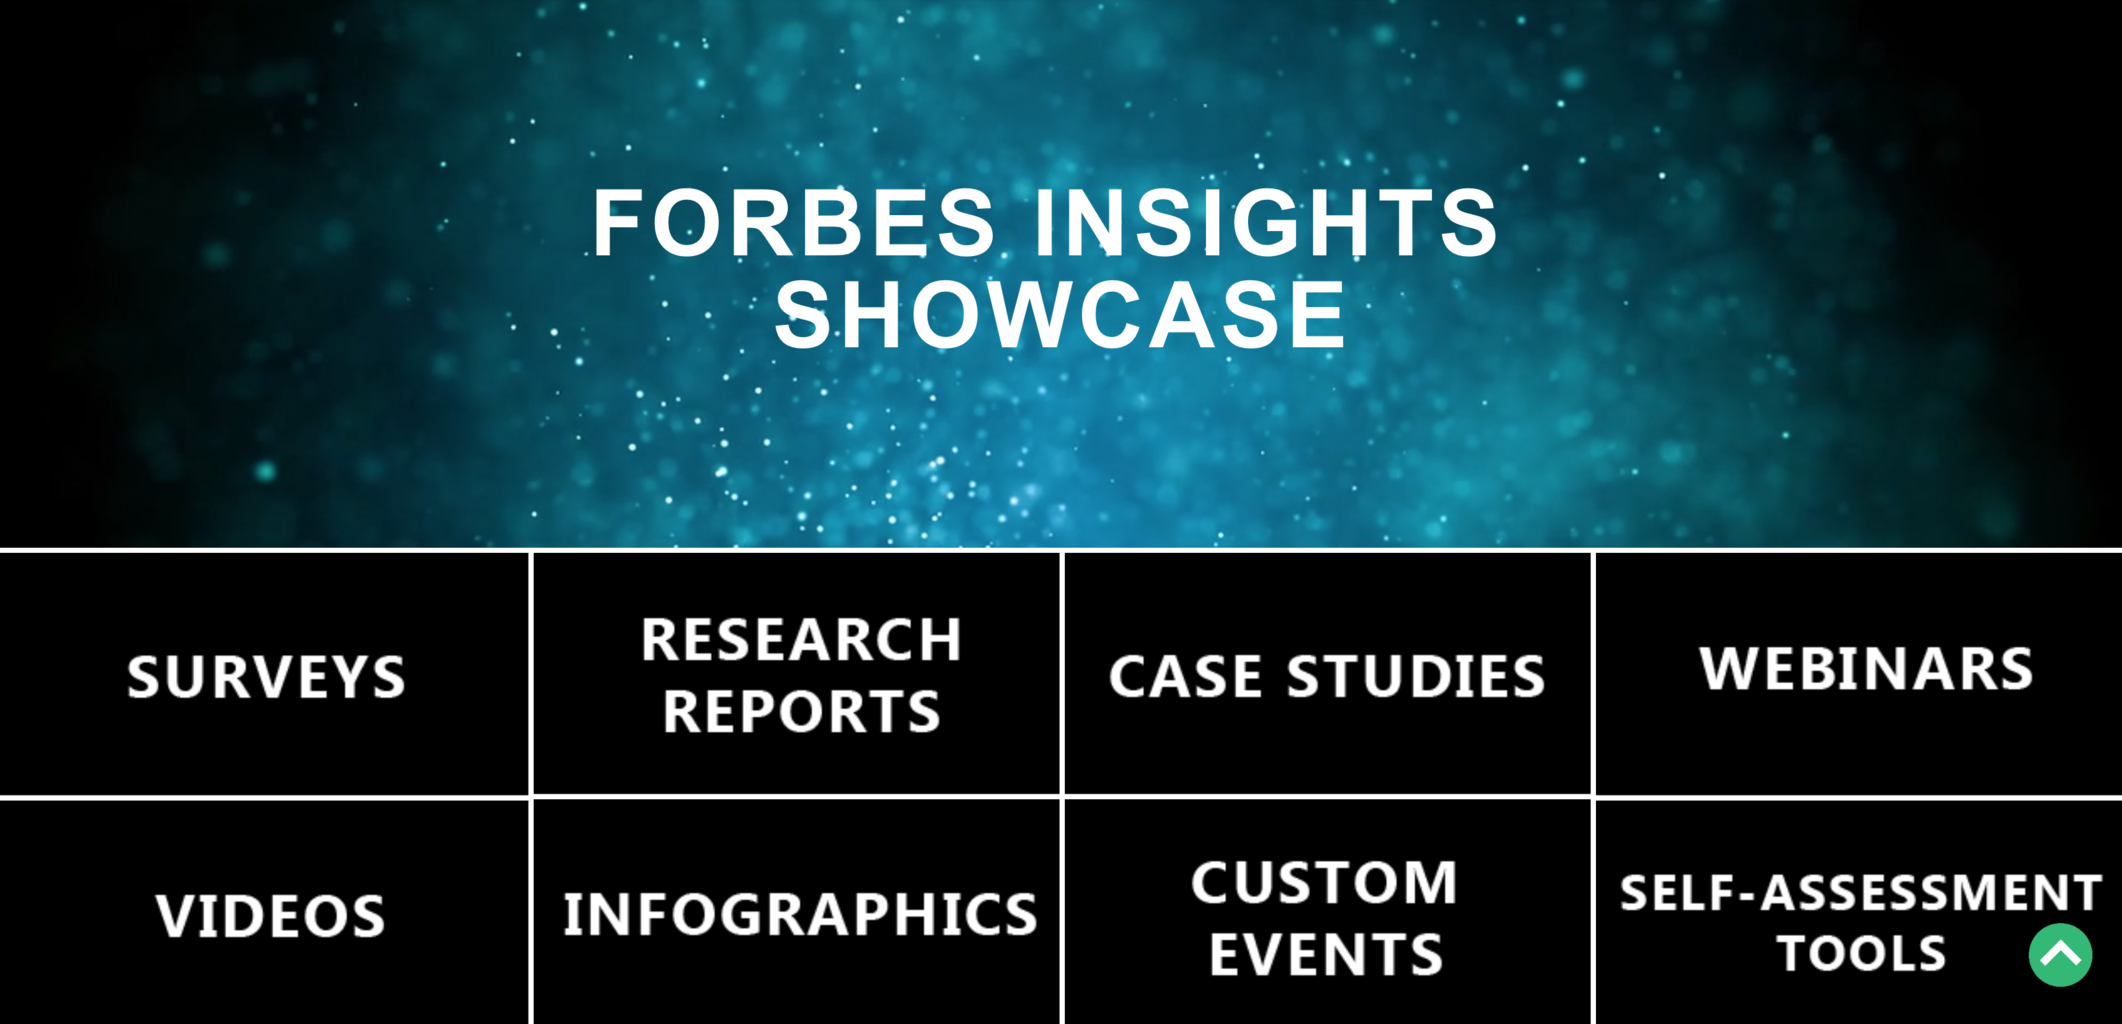 Forbes Insights Showcase